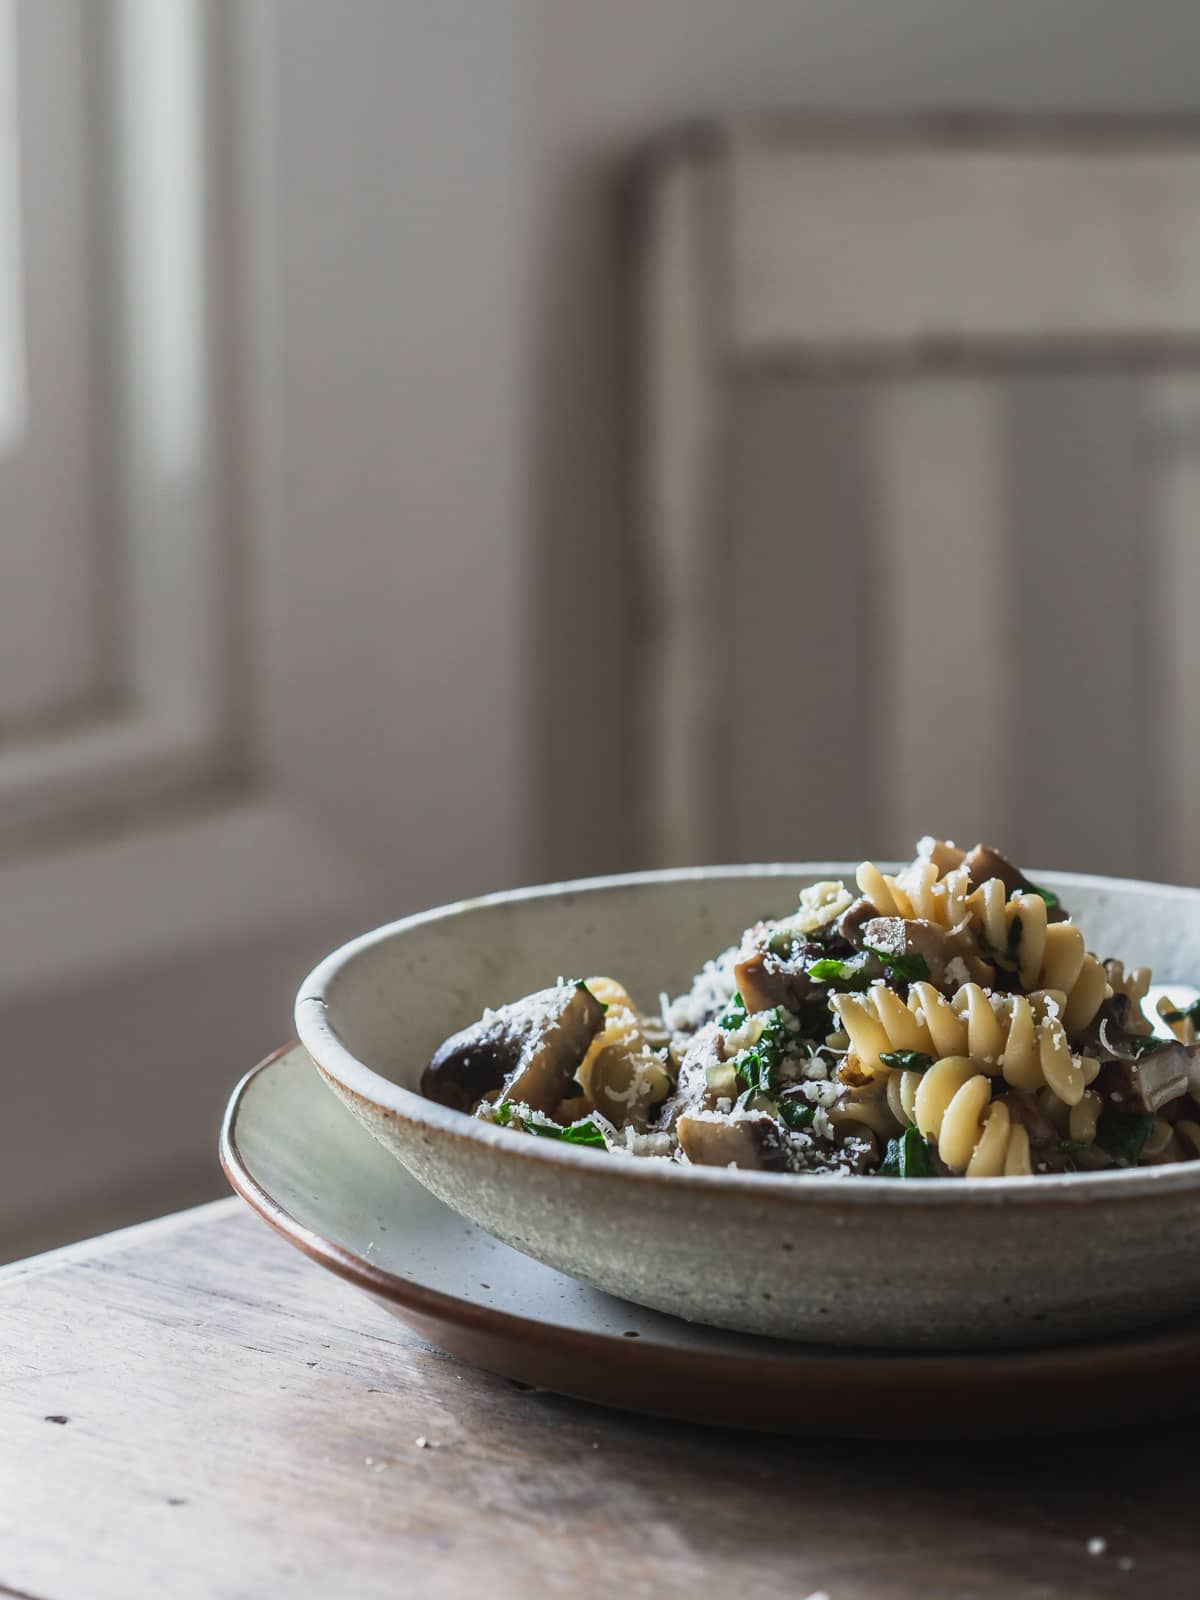 A bowl of mushroom pasta on a wooden table near a window.